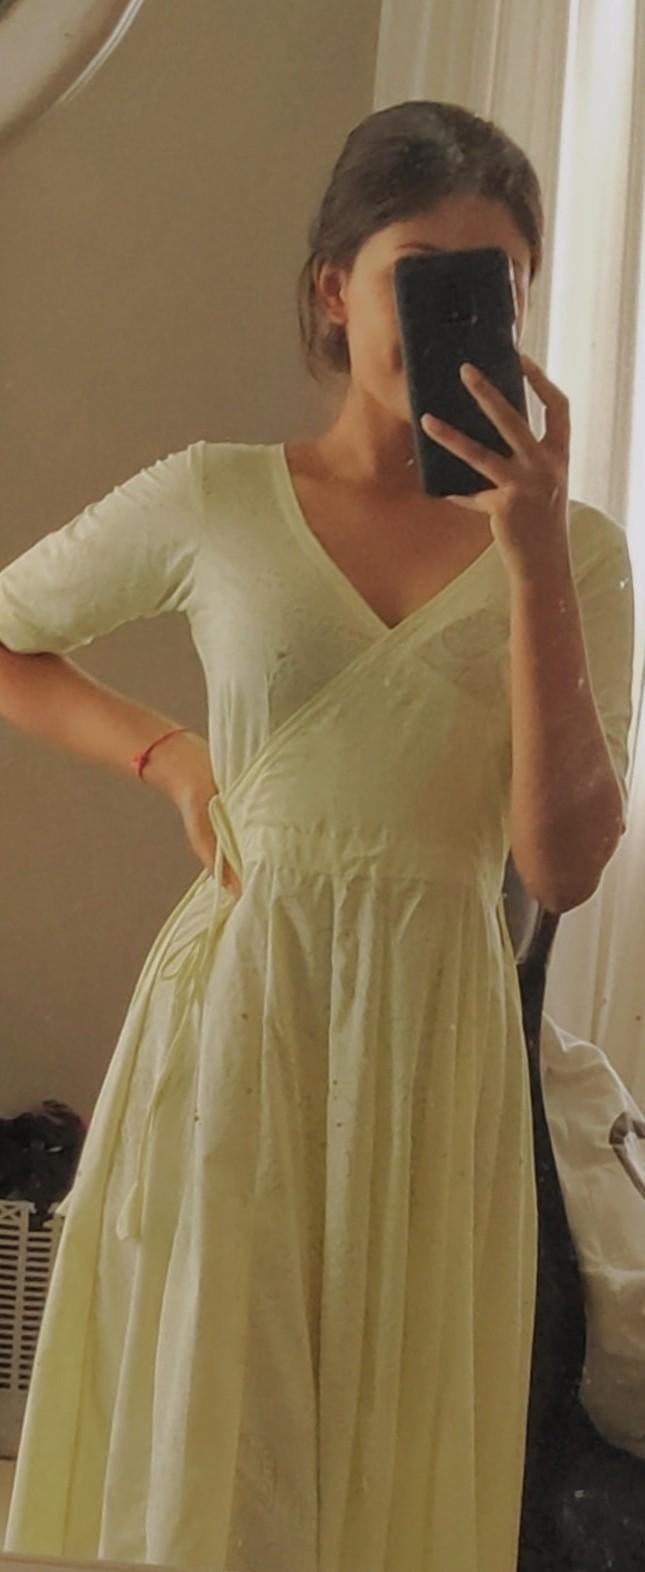 Is this a nice looking dress?